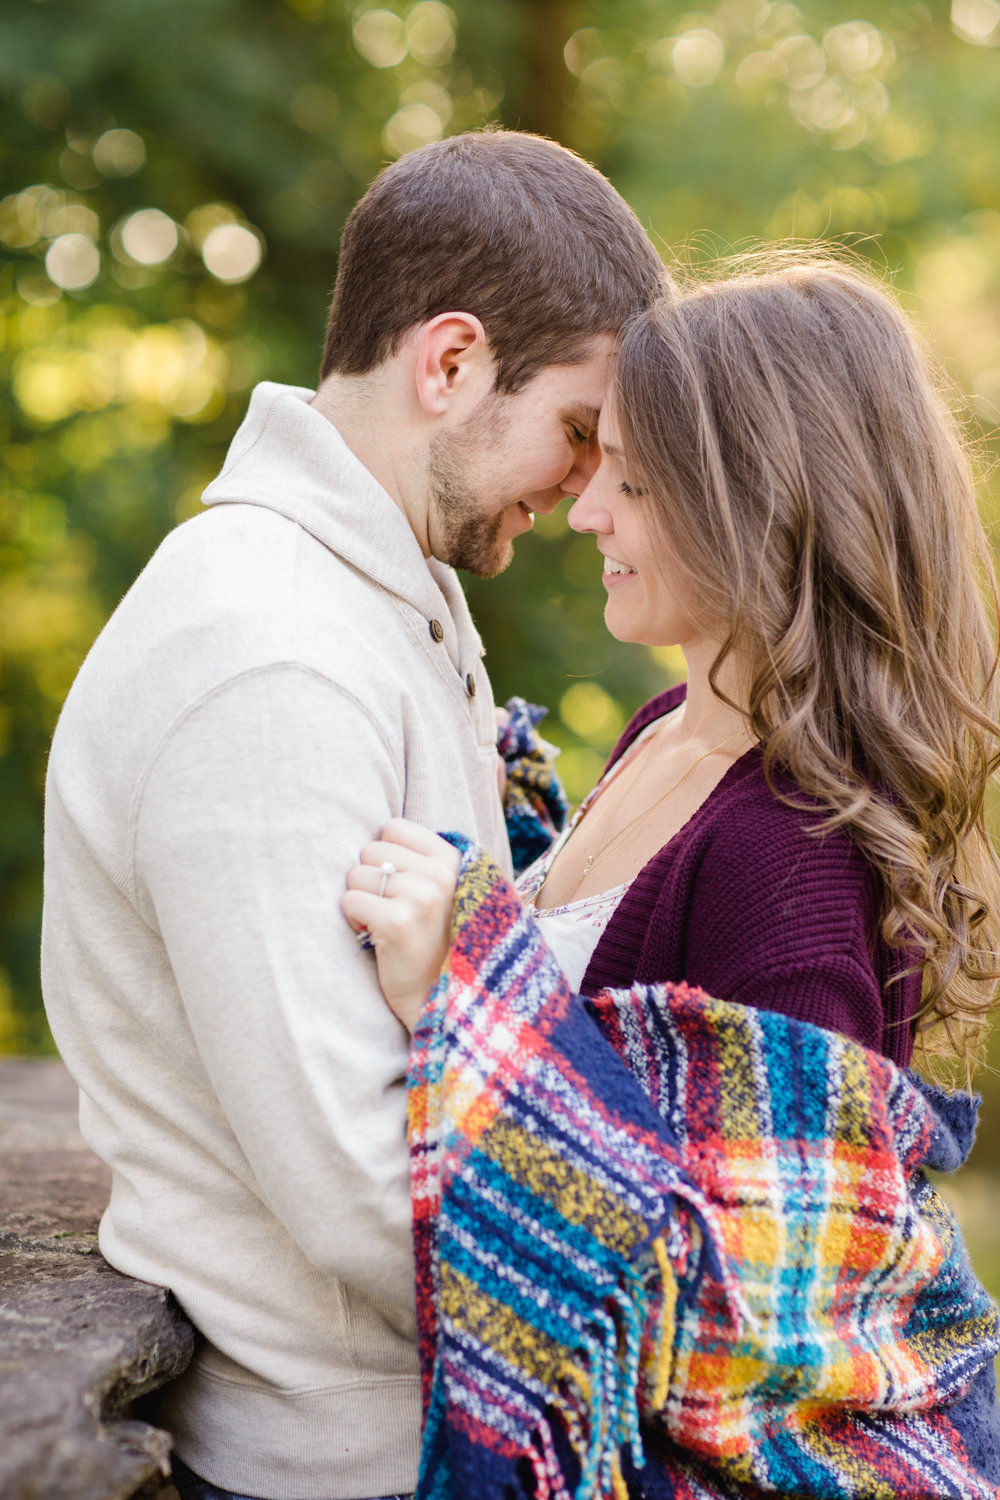 Valley Forge National Park Philly Scranton PA Fall Engagement Session Photos_JDP-32.jpg